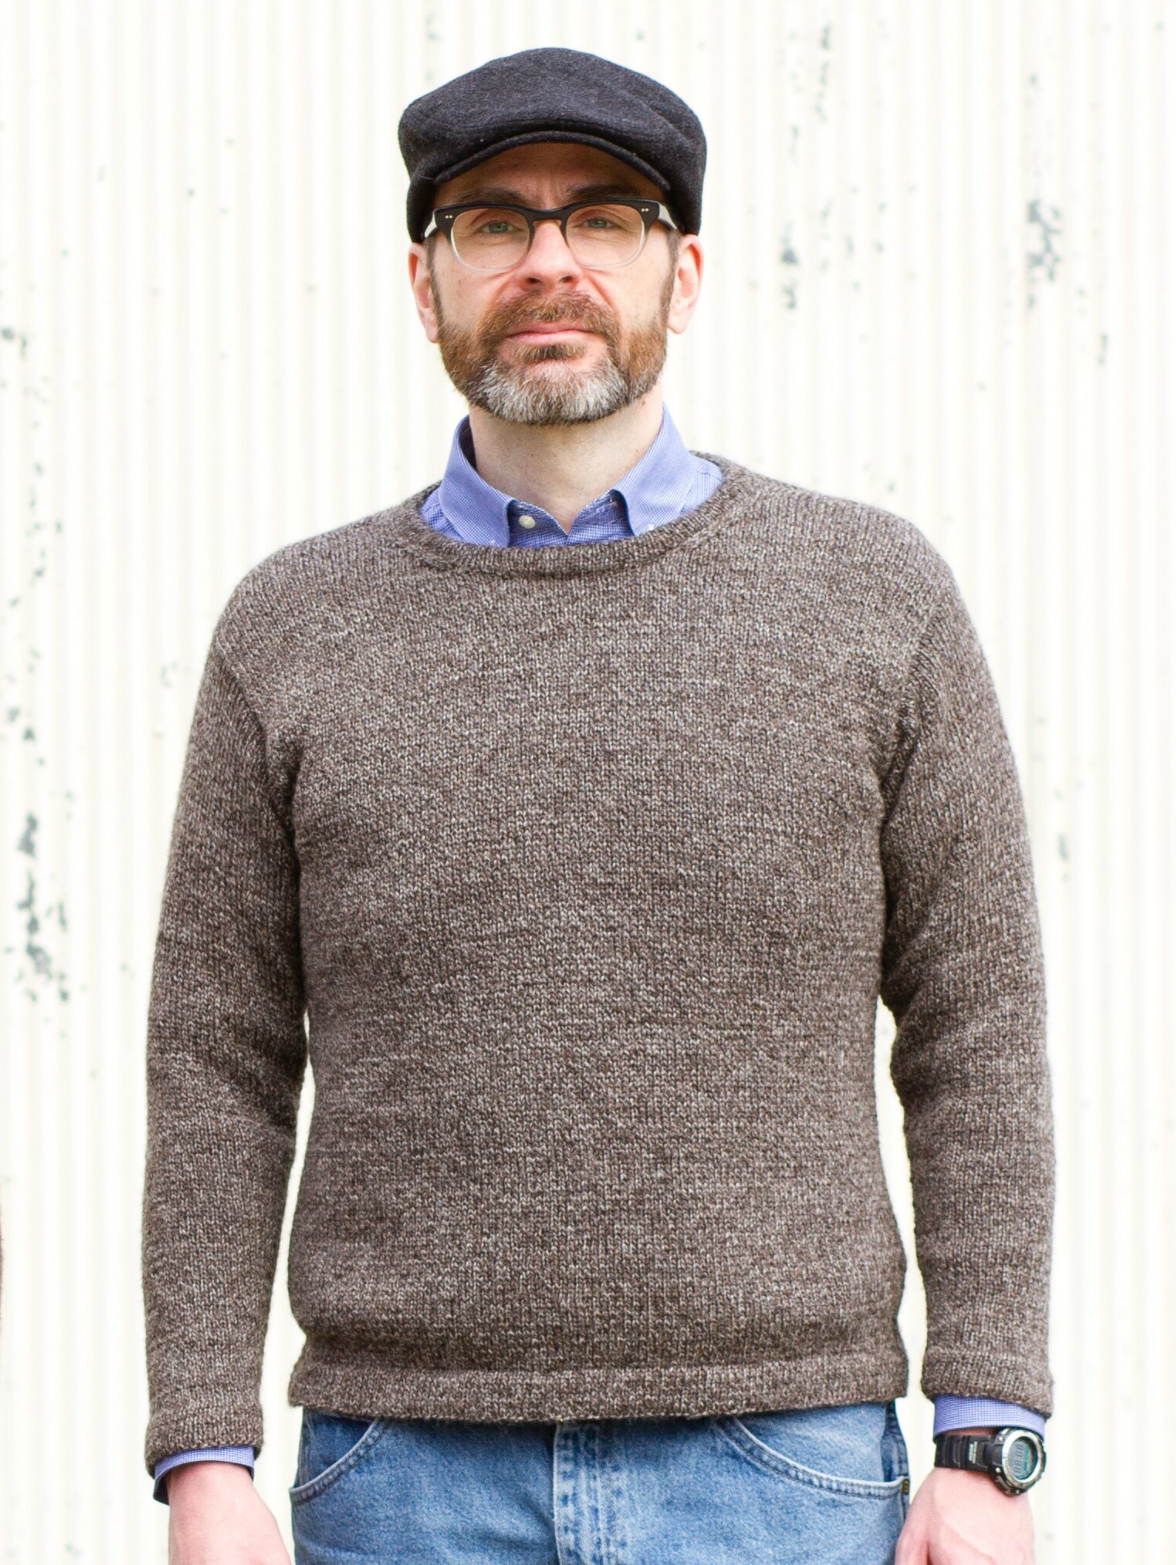 Stephen's woolly marled Abram sweater in Thirteen Mile yarn